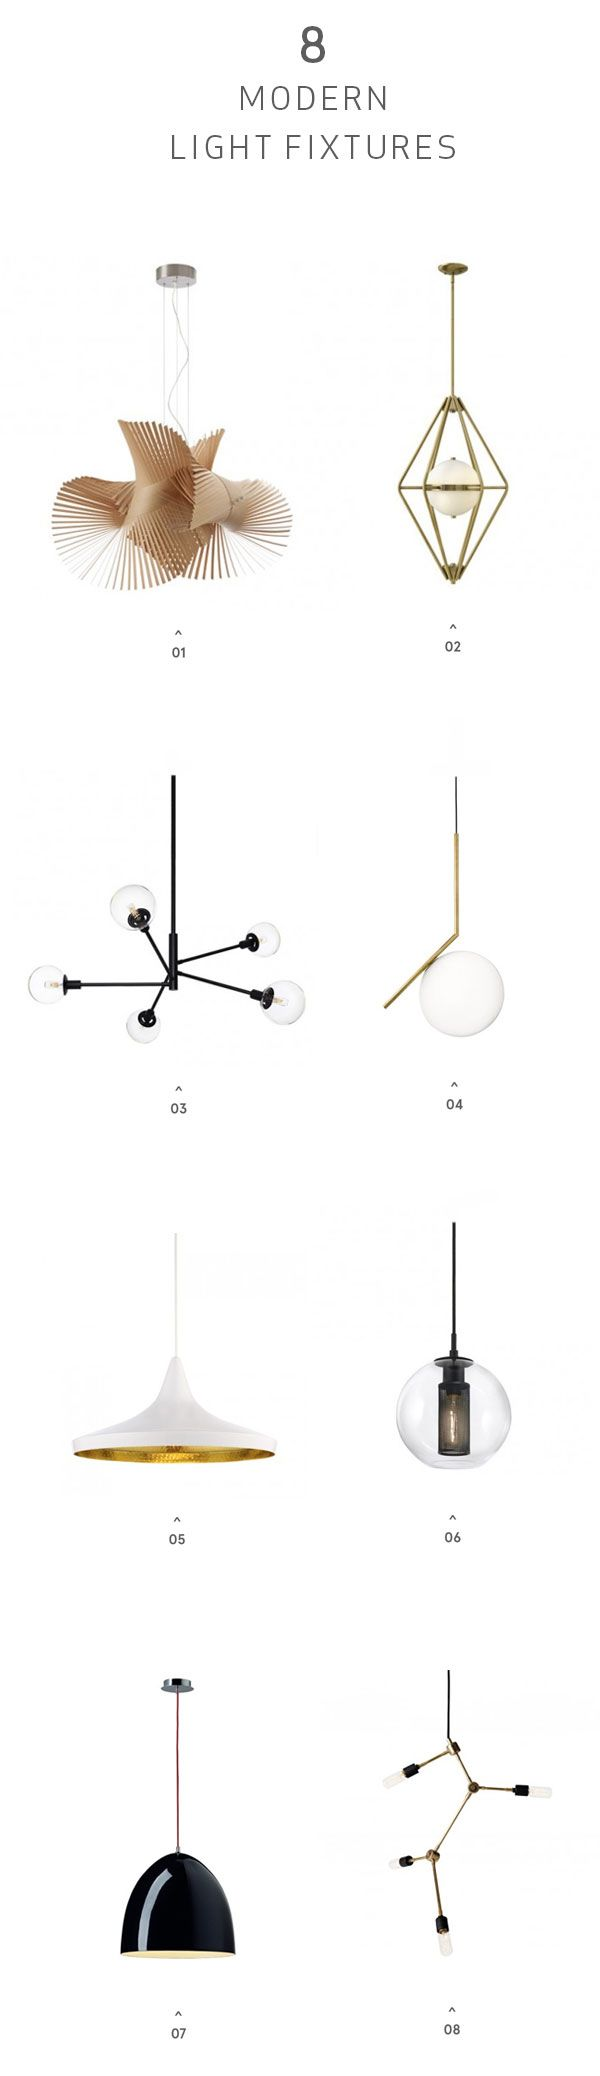 pinned by barefootblogin.com 8 Modern Light Fixtures